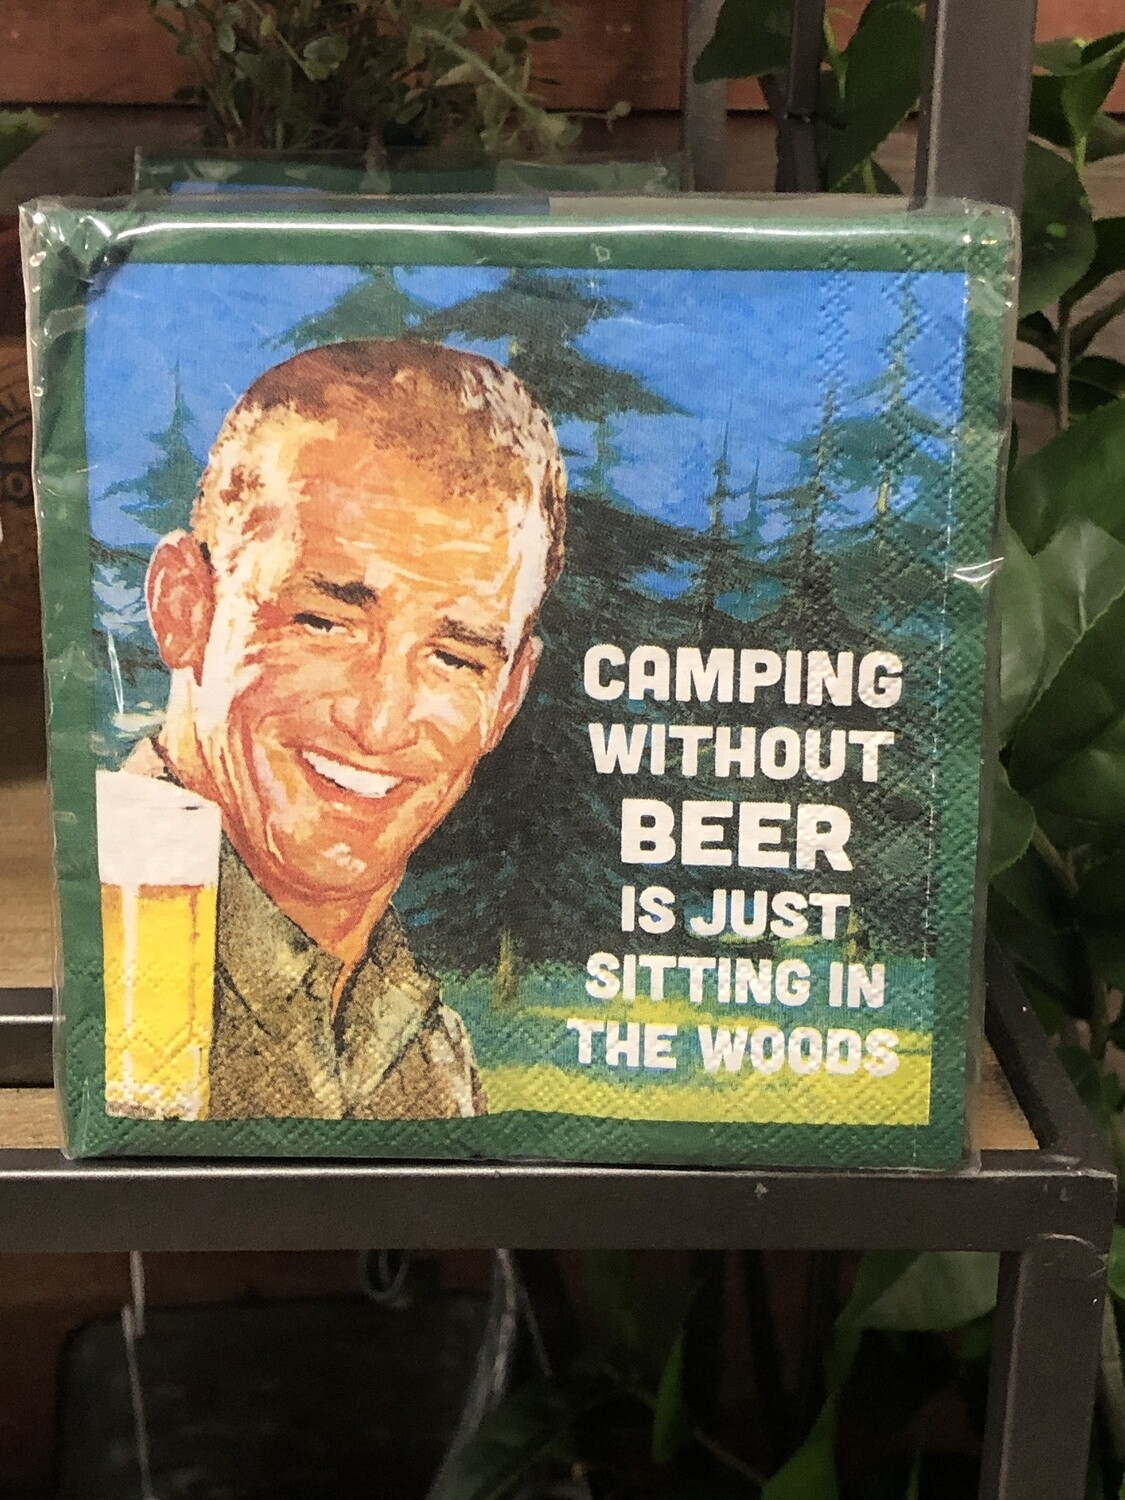 Camping without beer - Bev